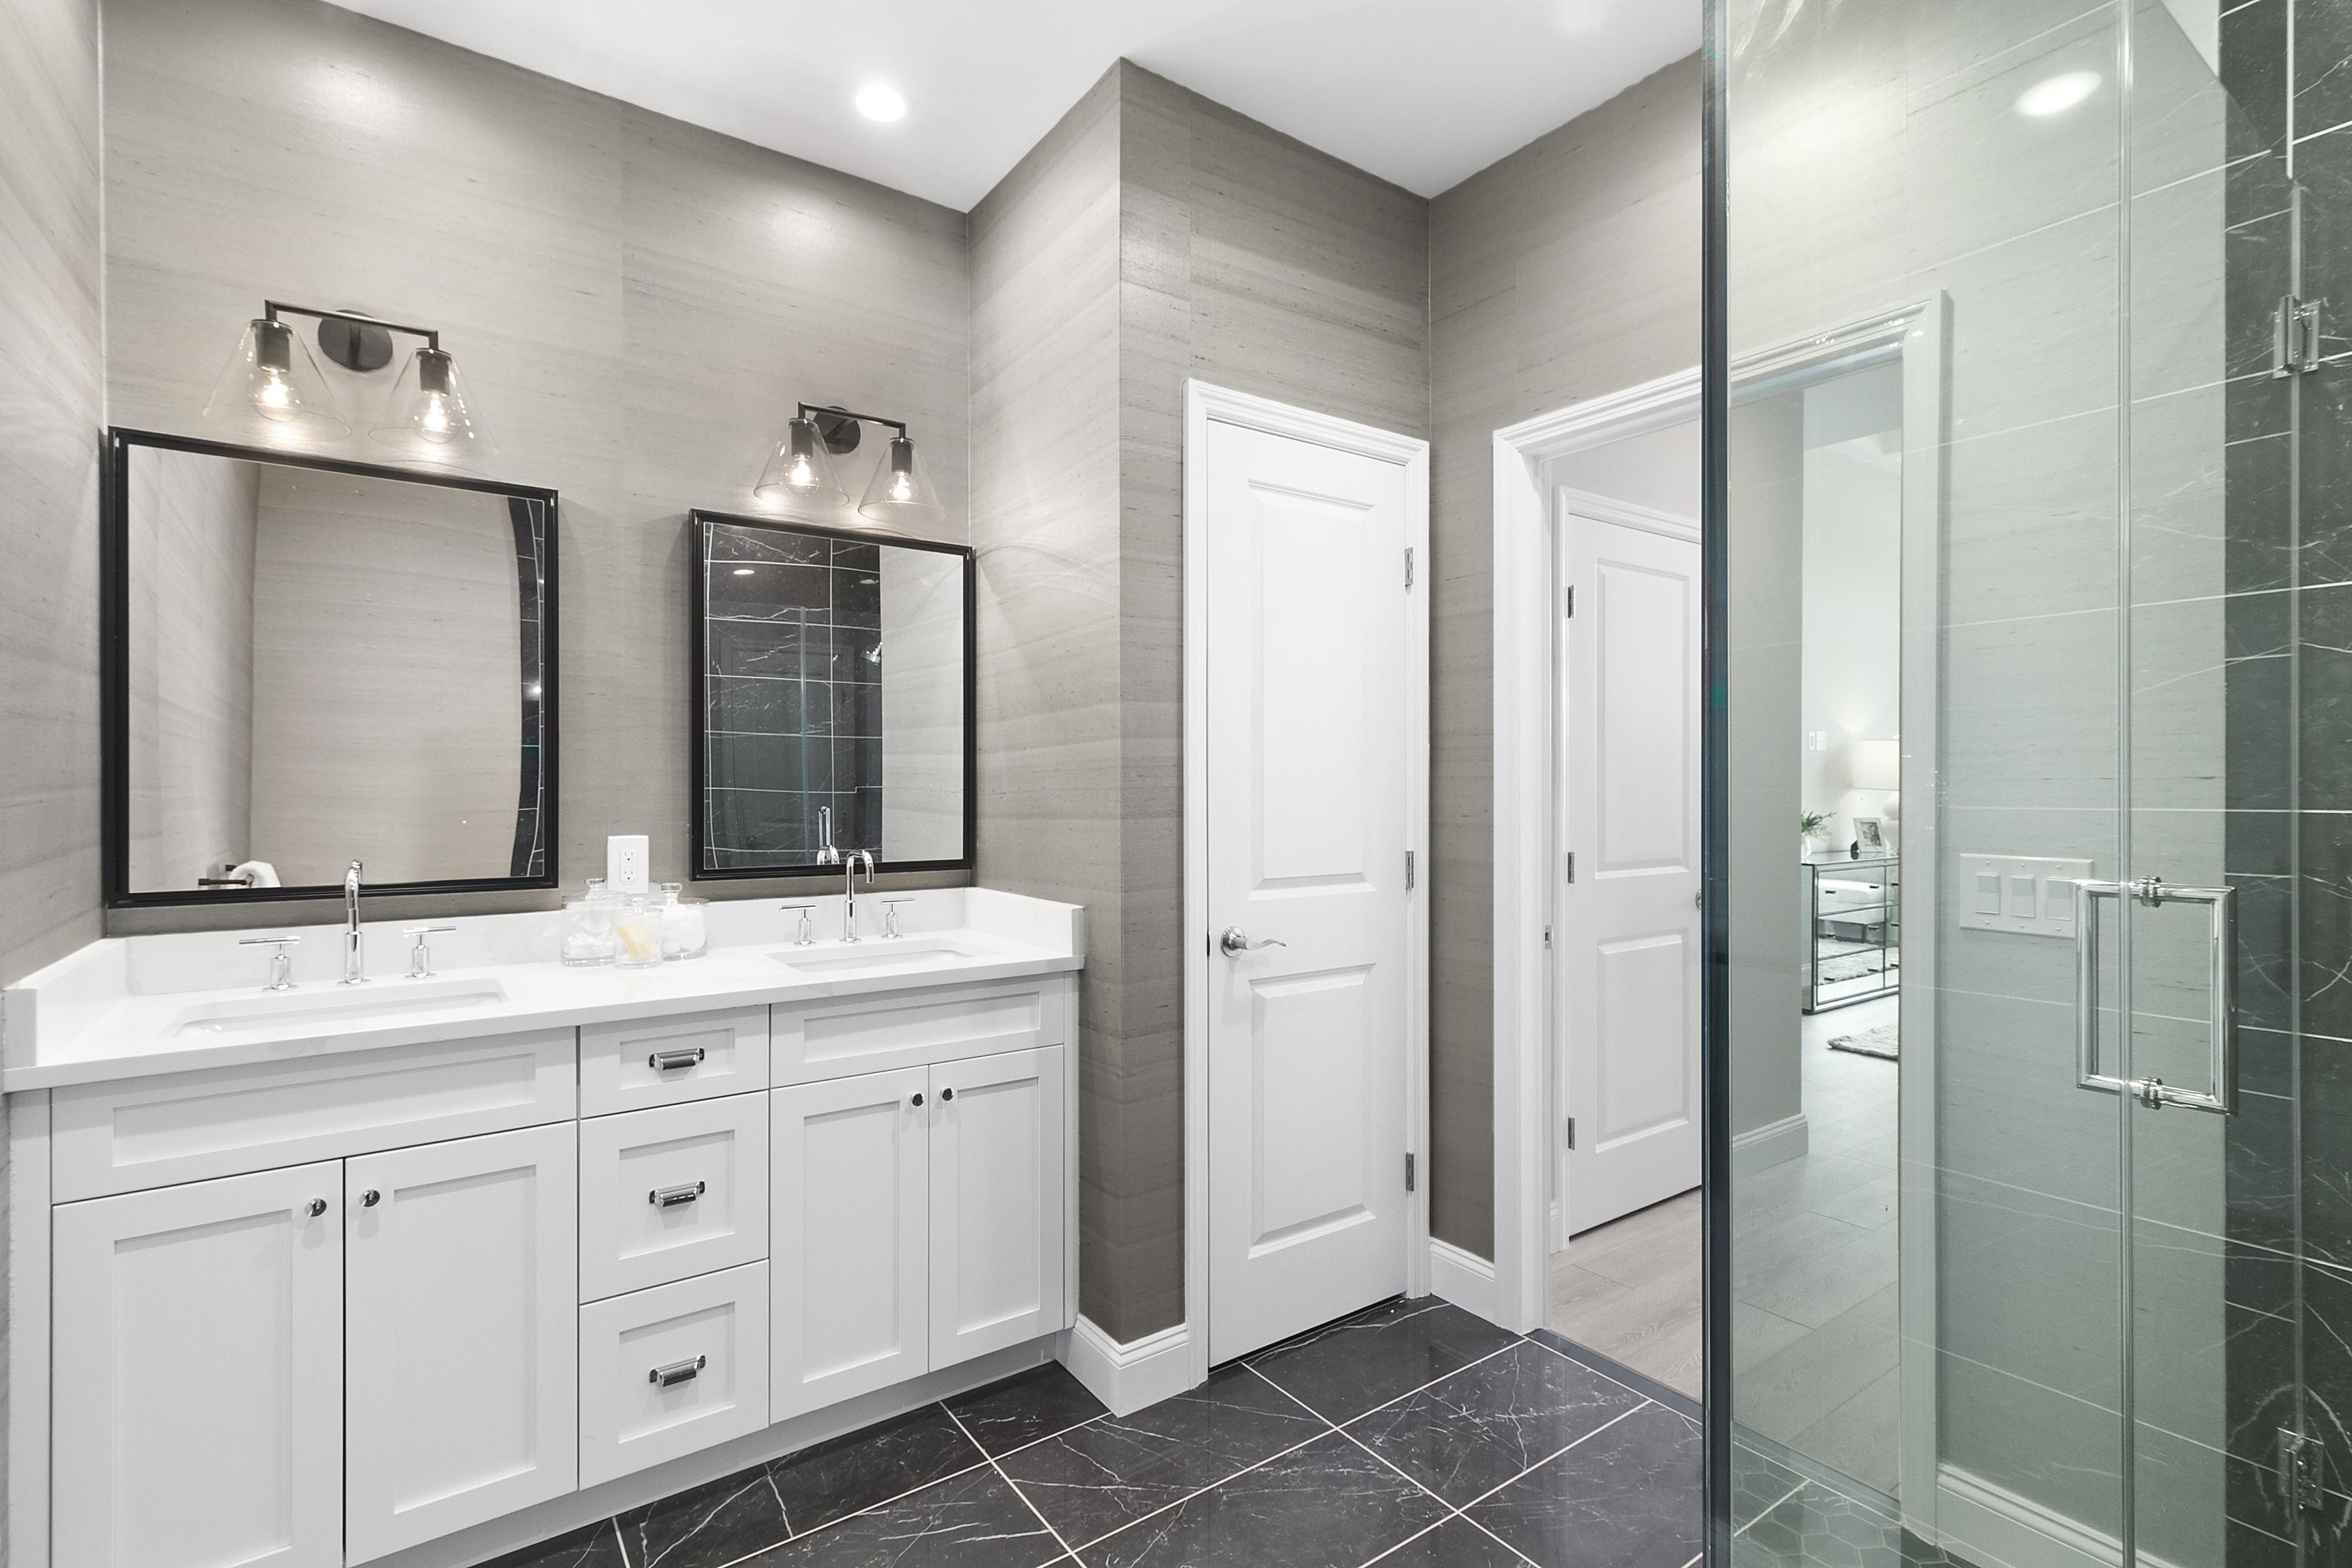 Bathroom featured in The Devonshire By Beechwood Homes in Nassau-Suffolk, NY